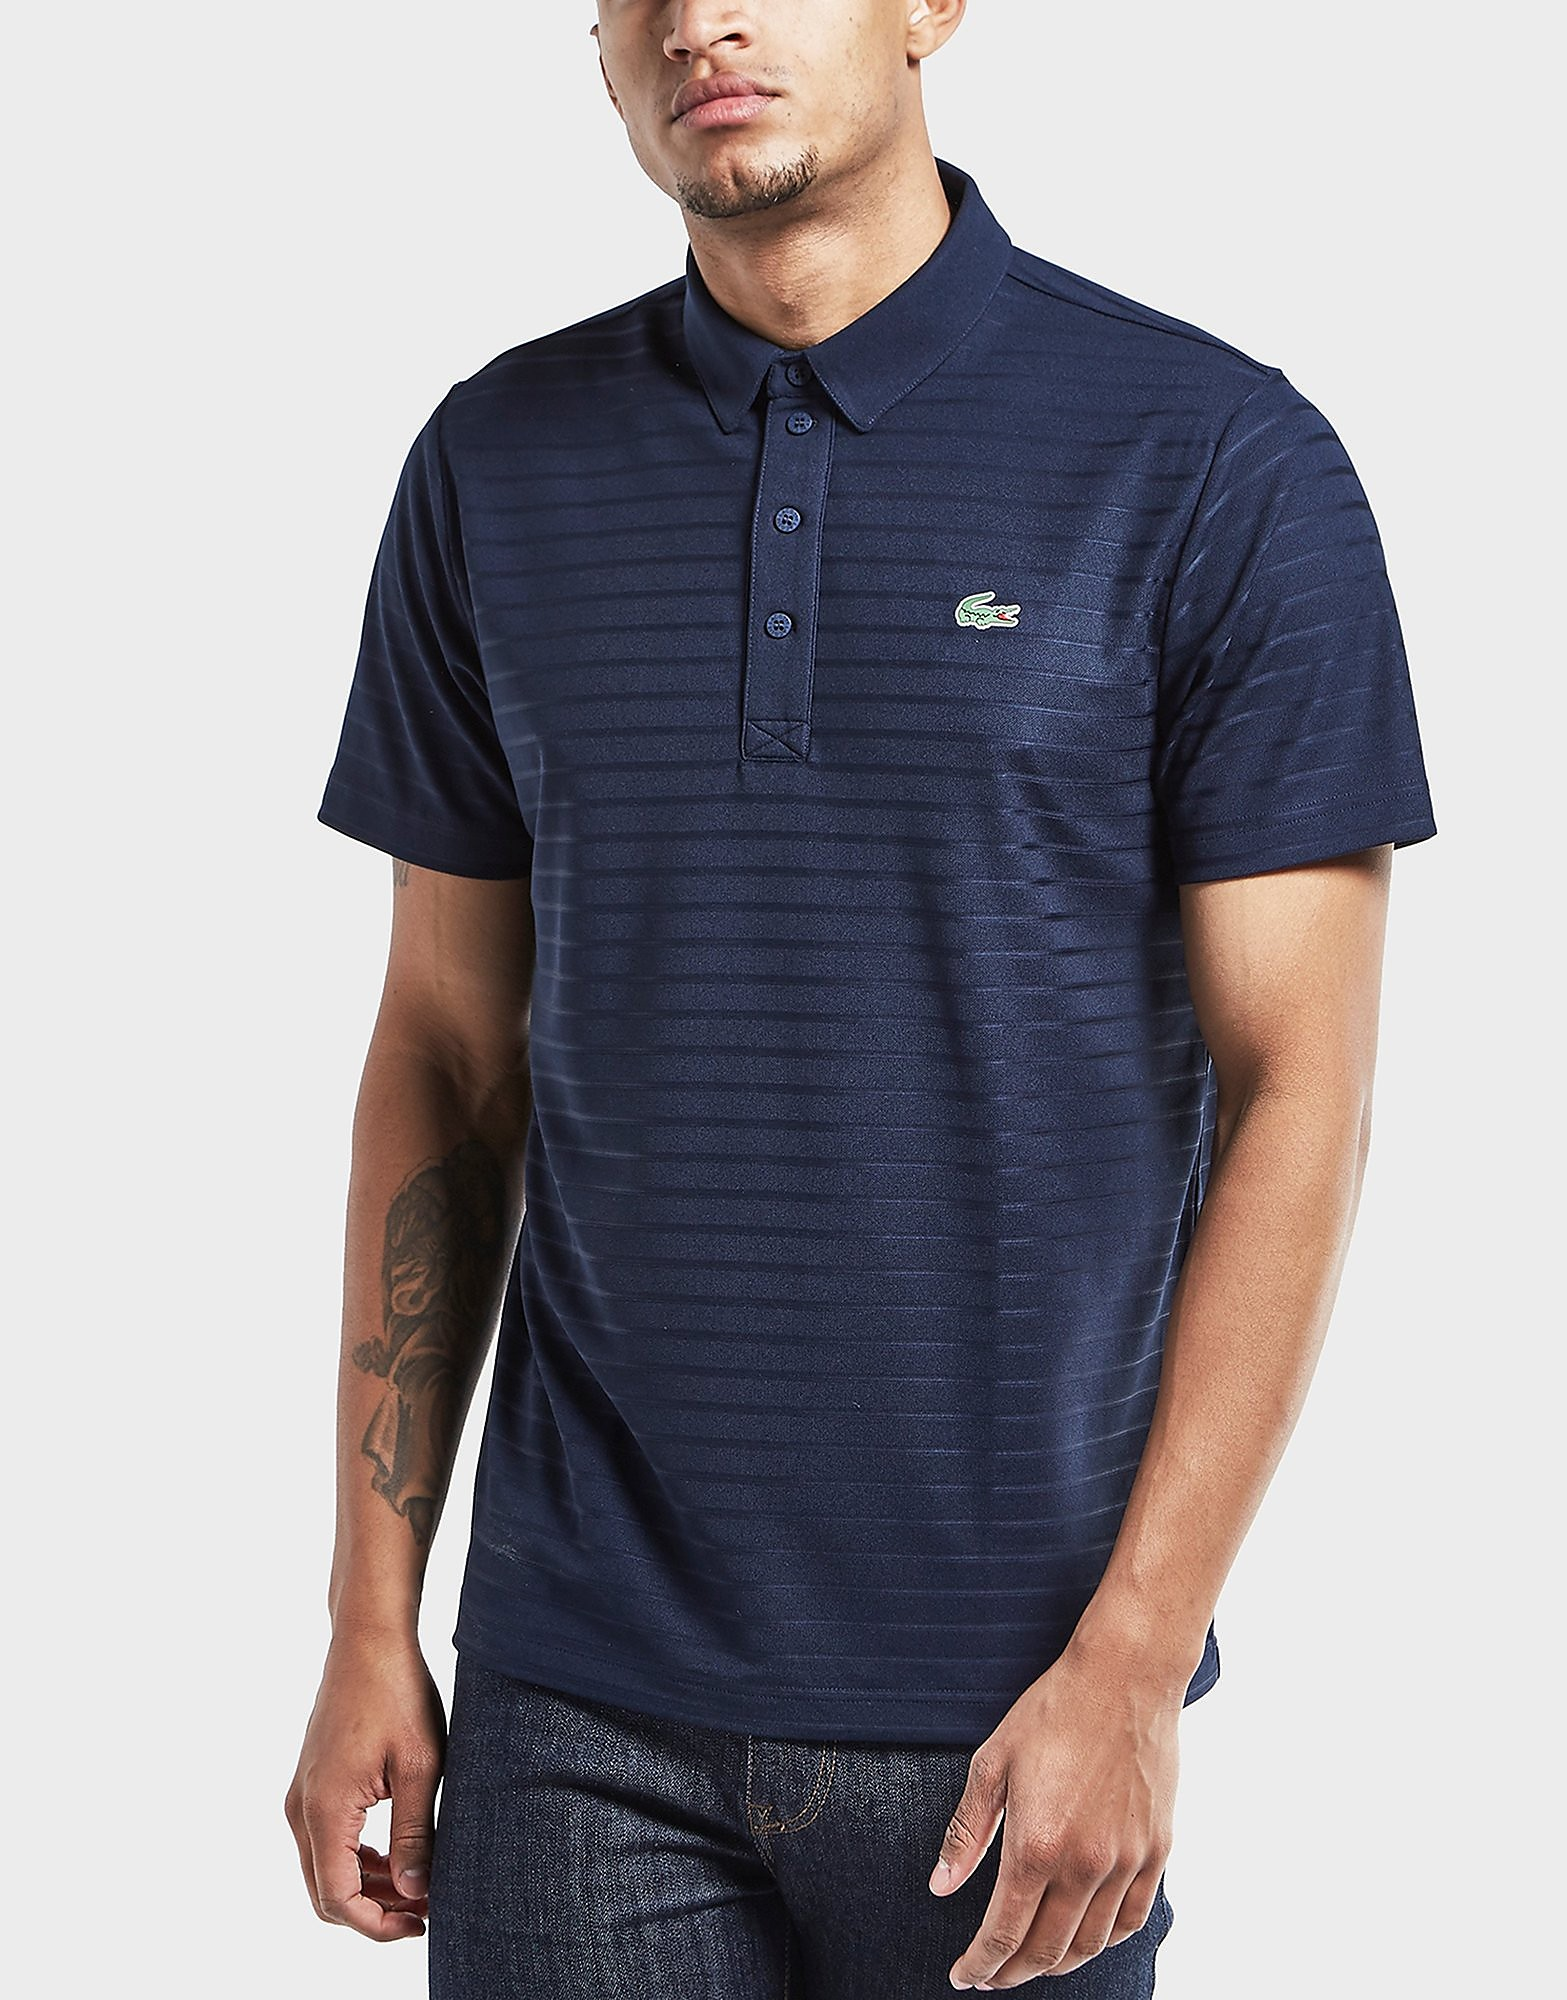 Lacoste Striped Short Sleeve Polo Shirt